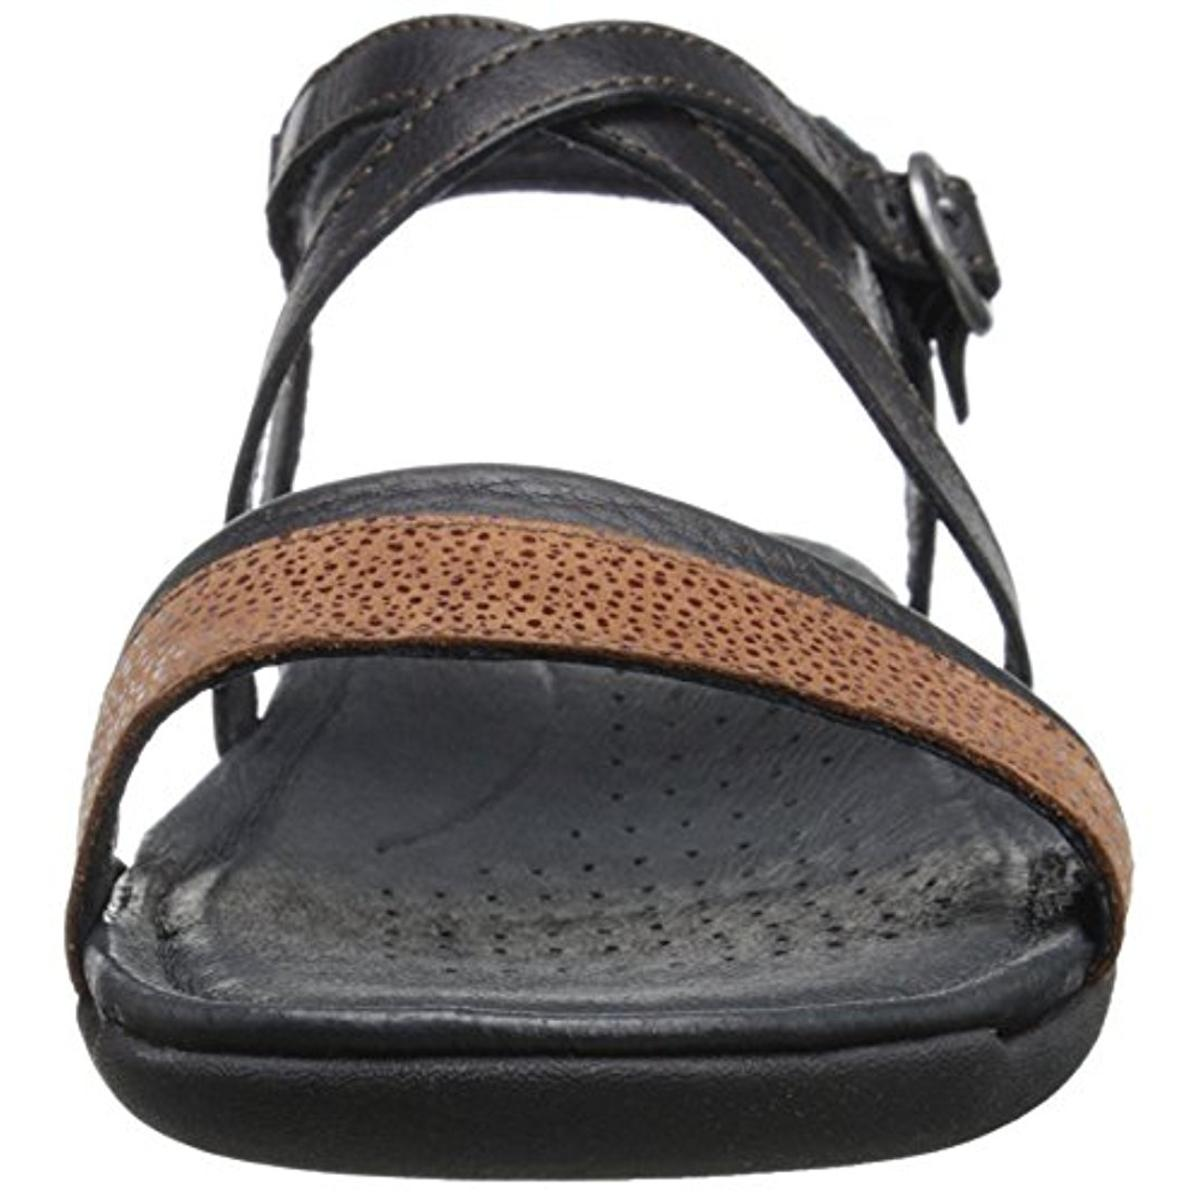 Keen Womens Rose City Leather Open Toe Strap Sandals